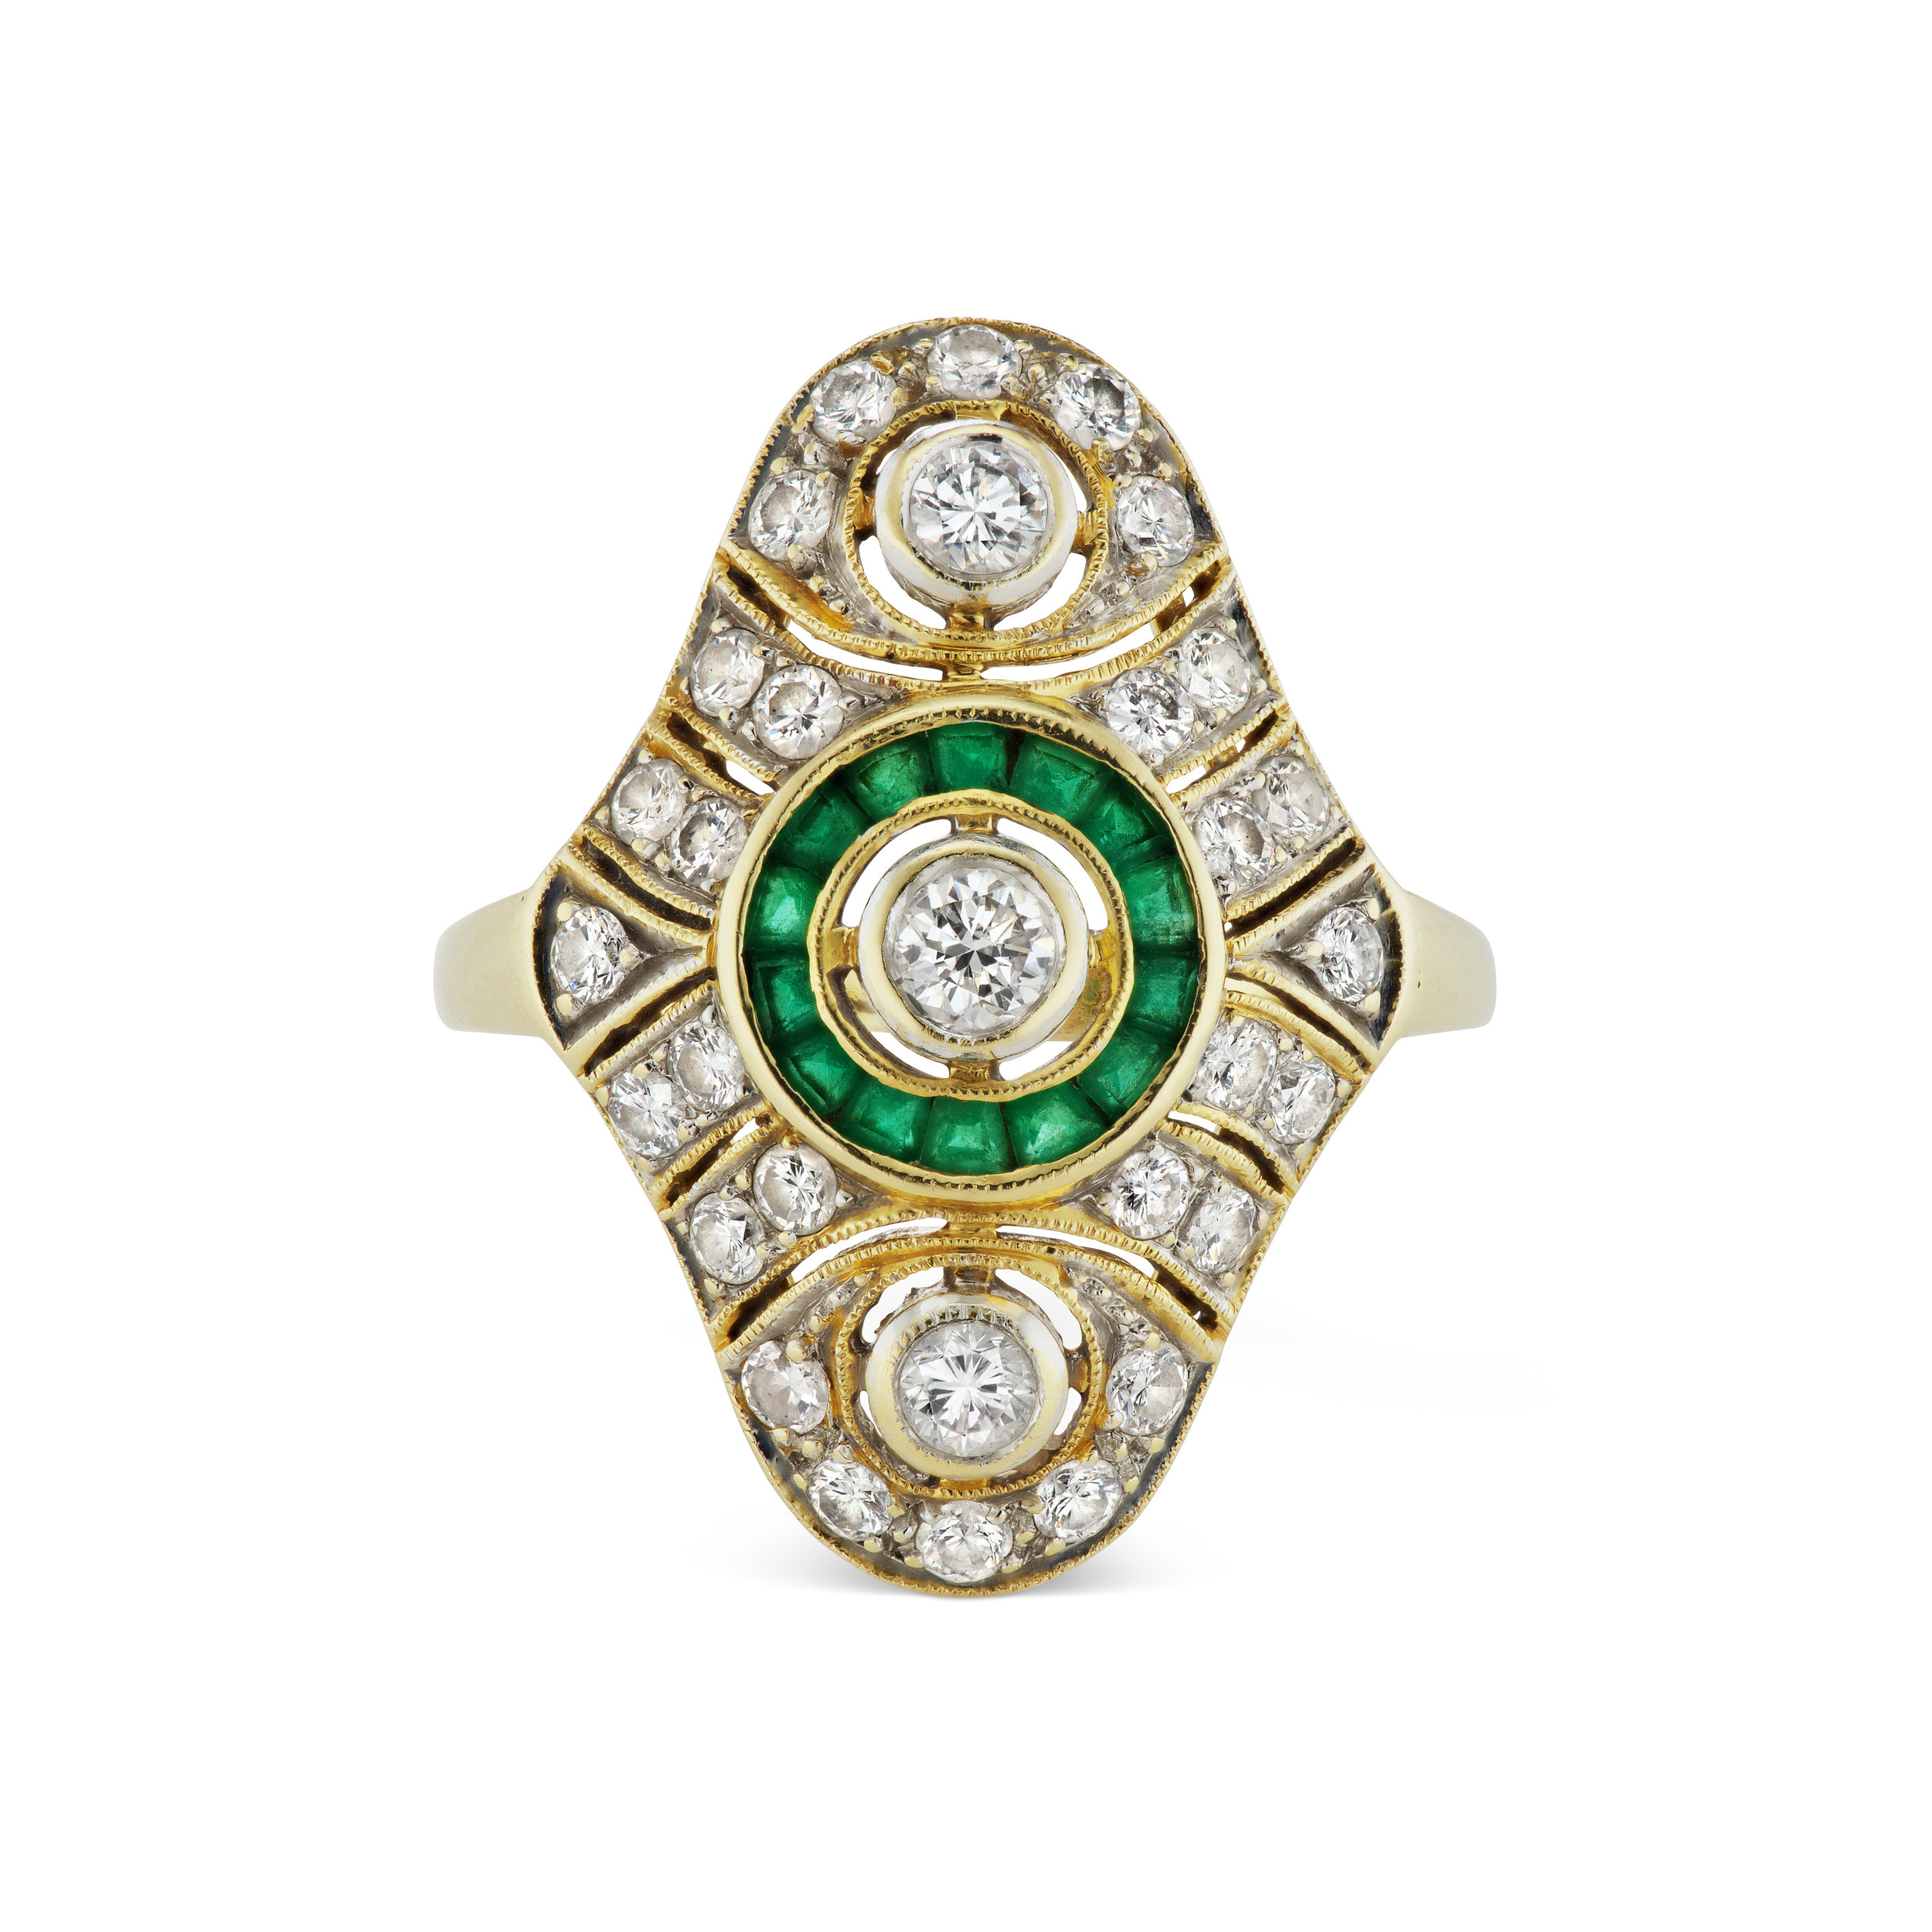 Antique-inspired diamond and emerald ring, mounted in yellow gold.